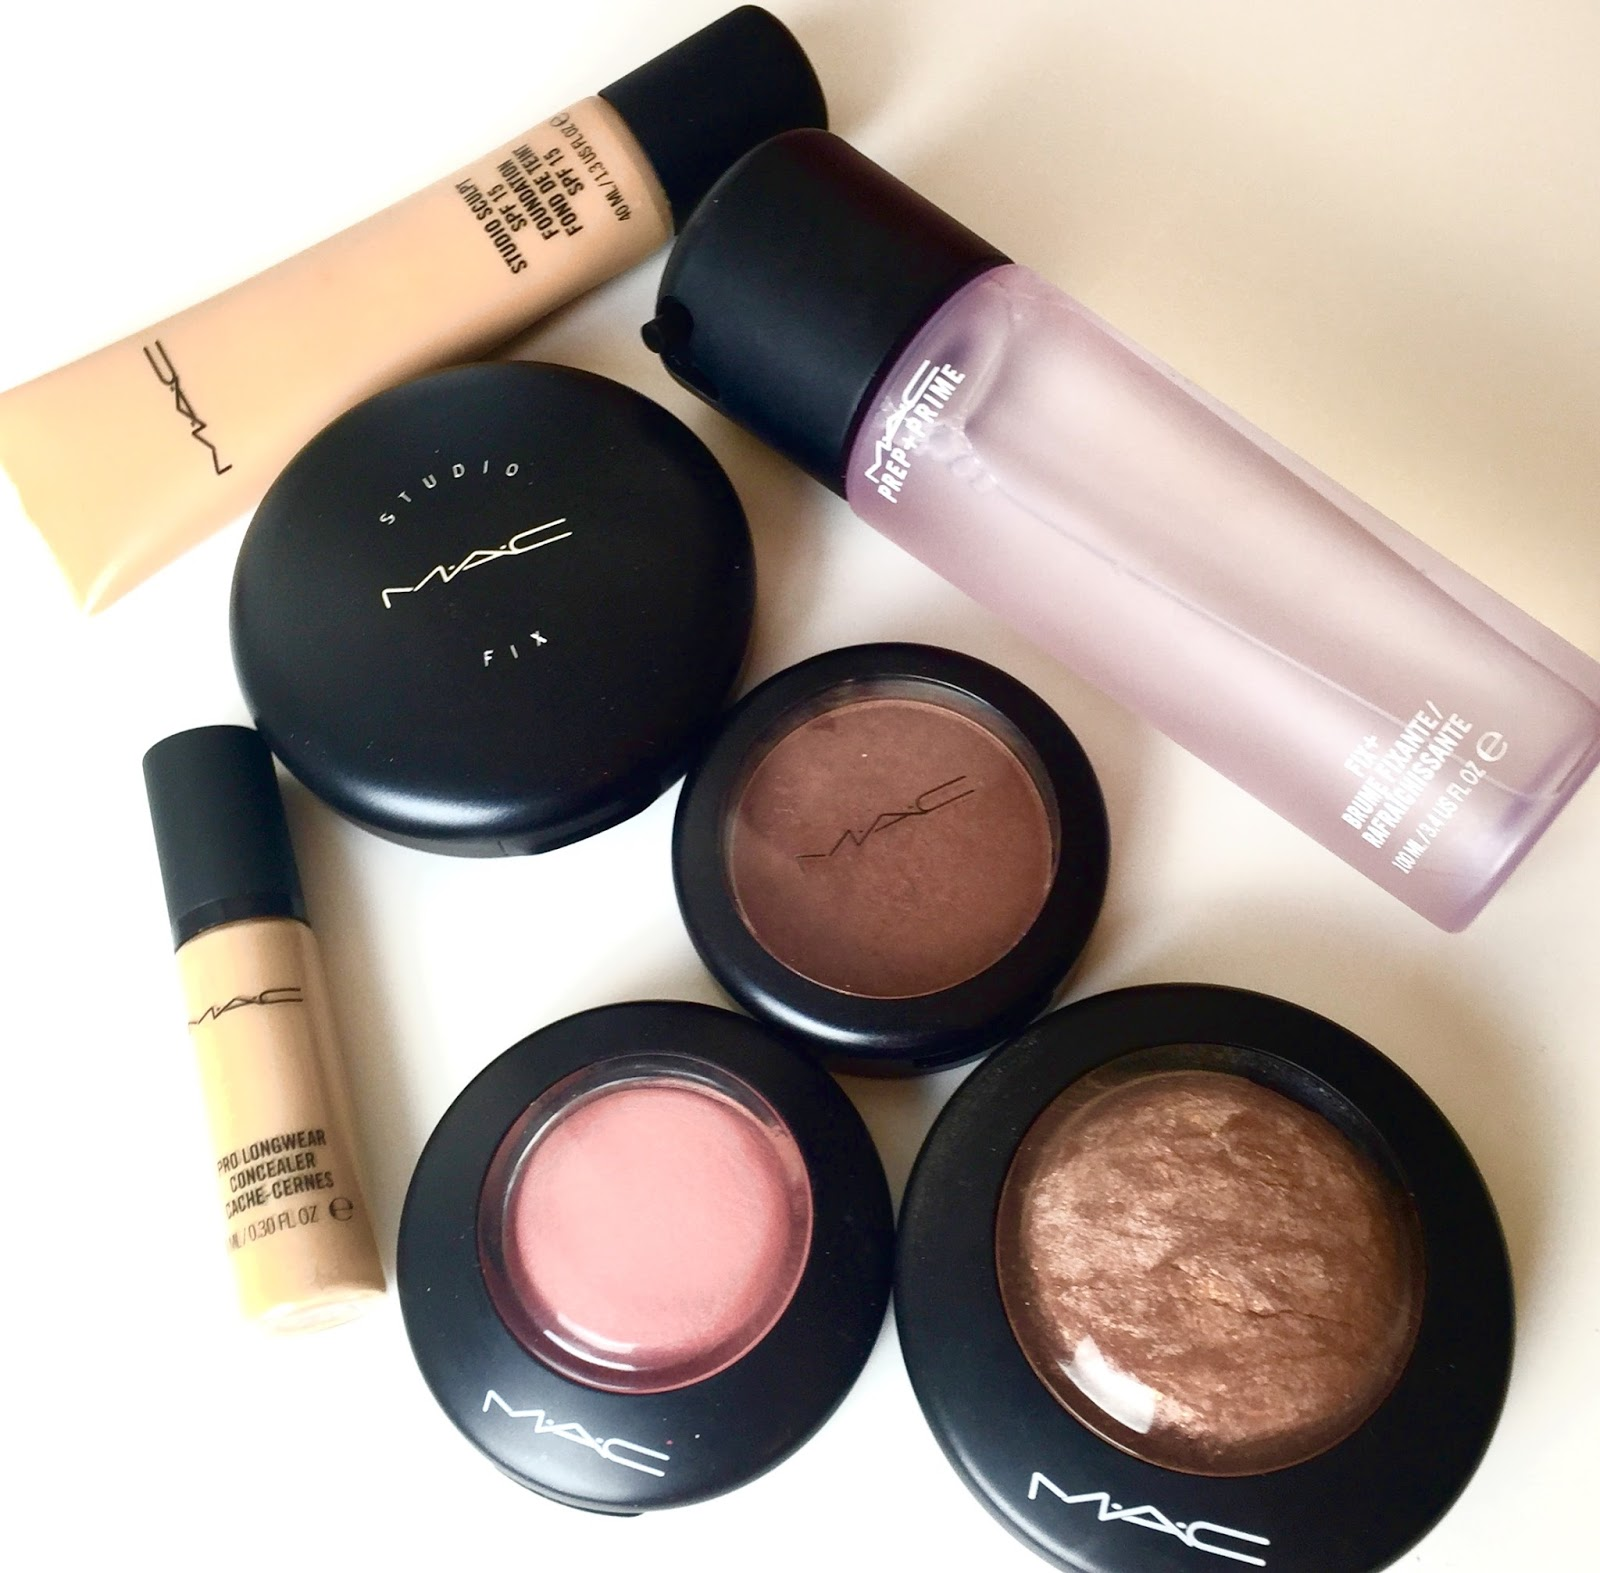 Cosmetics: Why I Can't Live Without These Mac Cosmetics Makeup